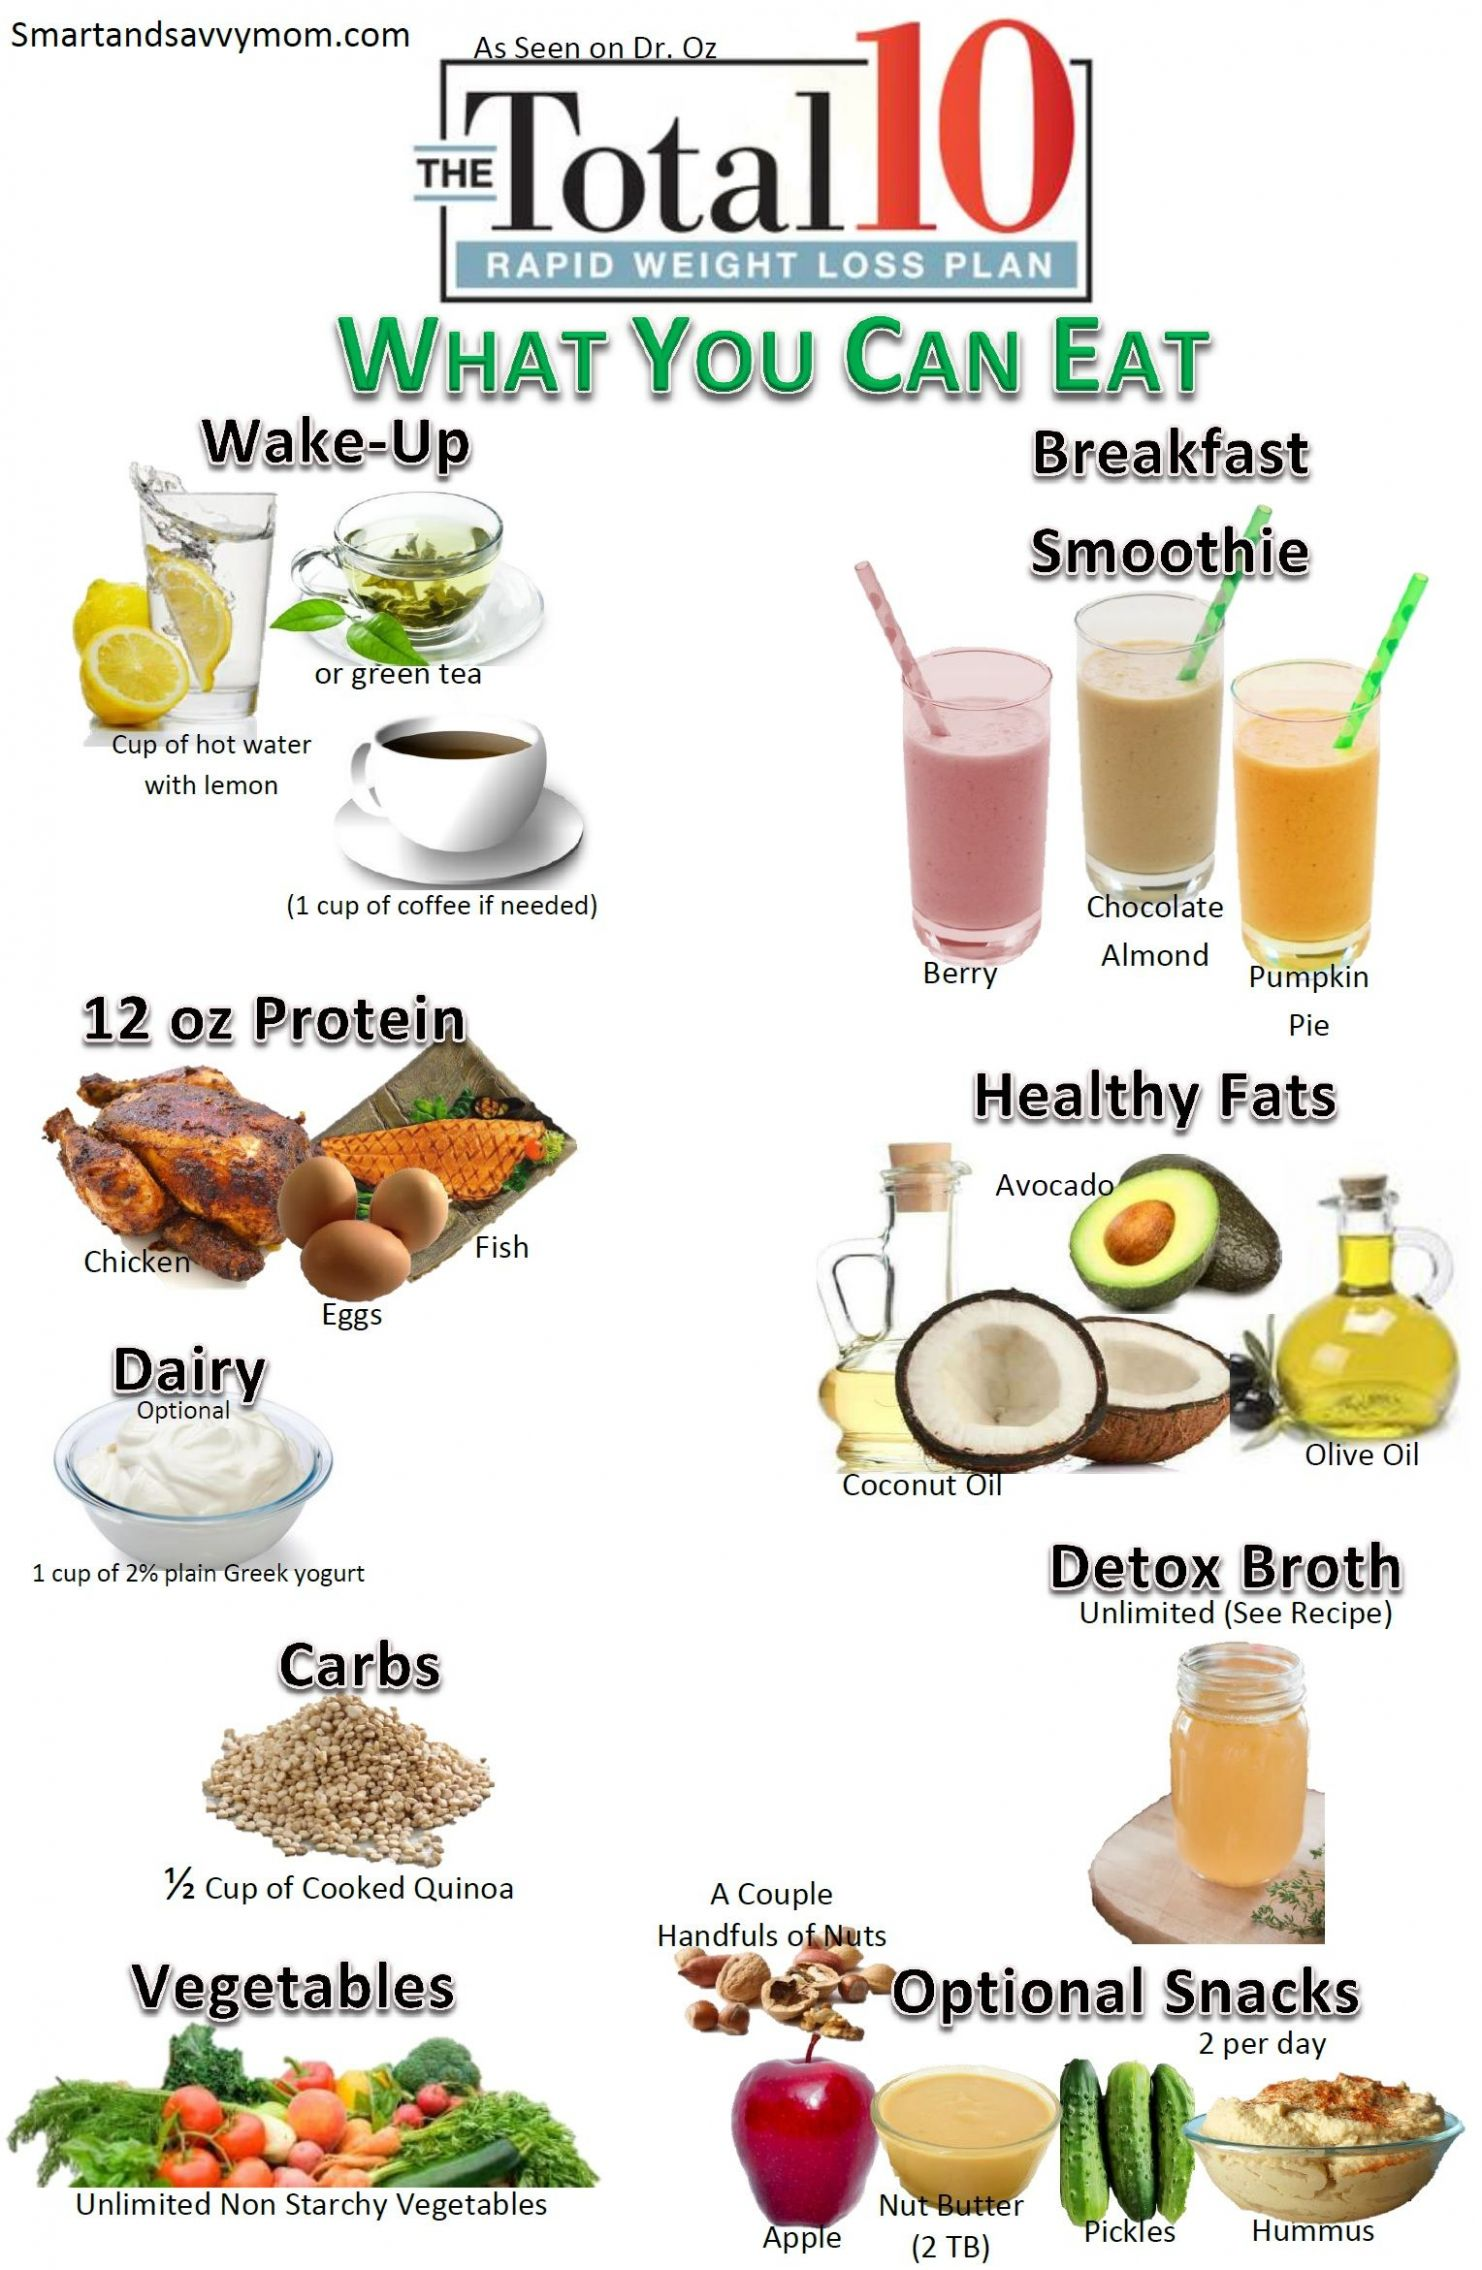 Pin on Total 11 Rapid Weight Loss Plan - Diet Recipes Weight Loss Tips